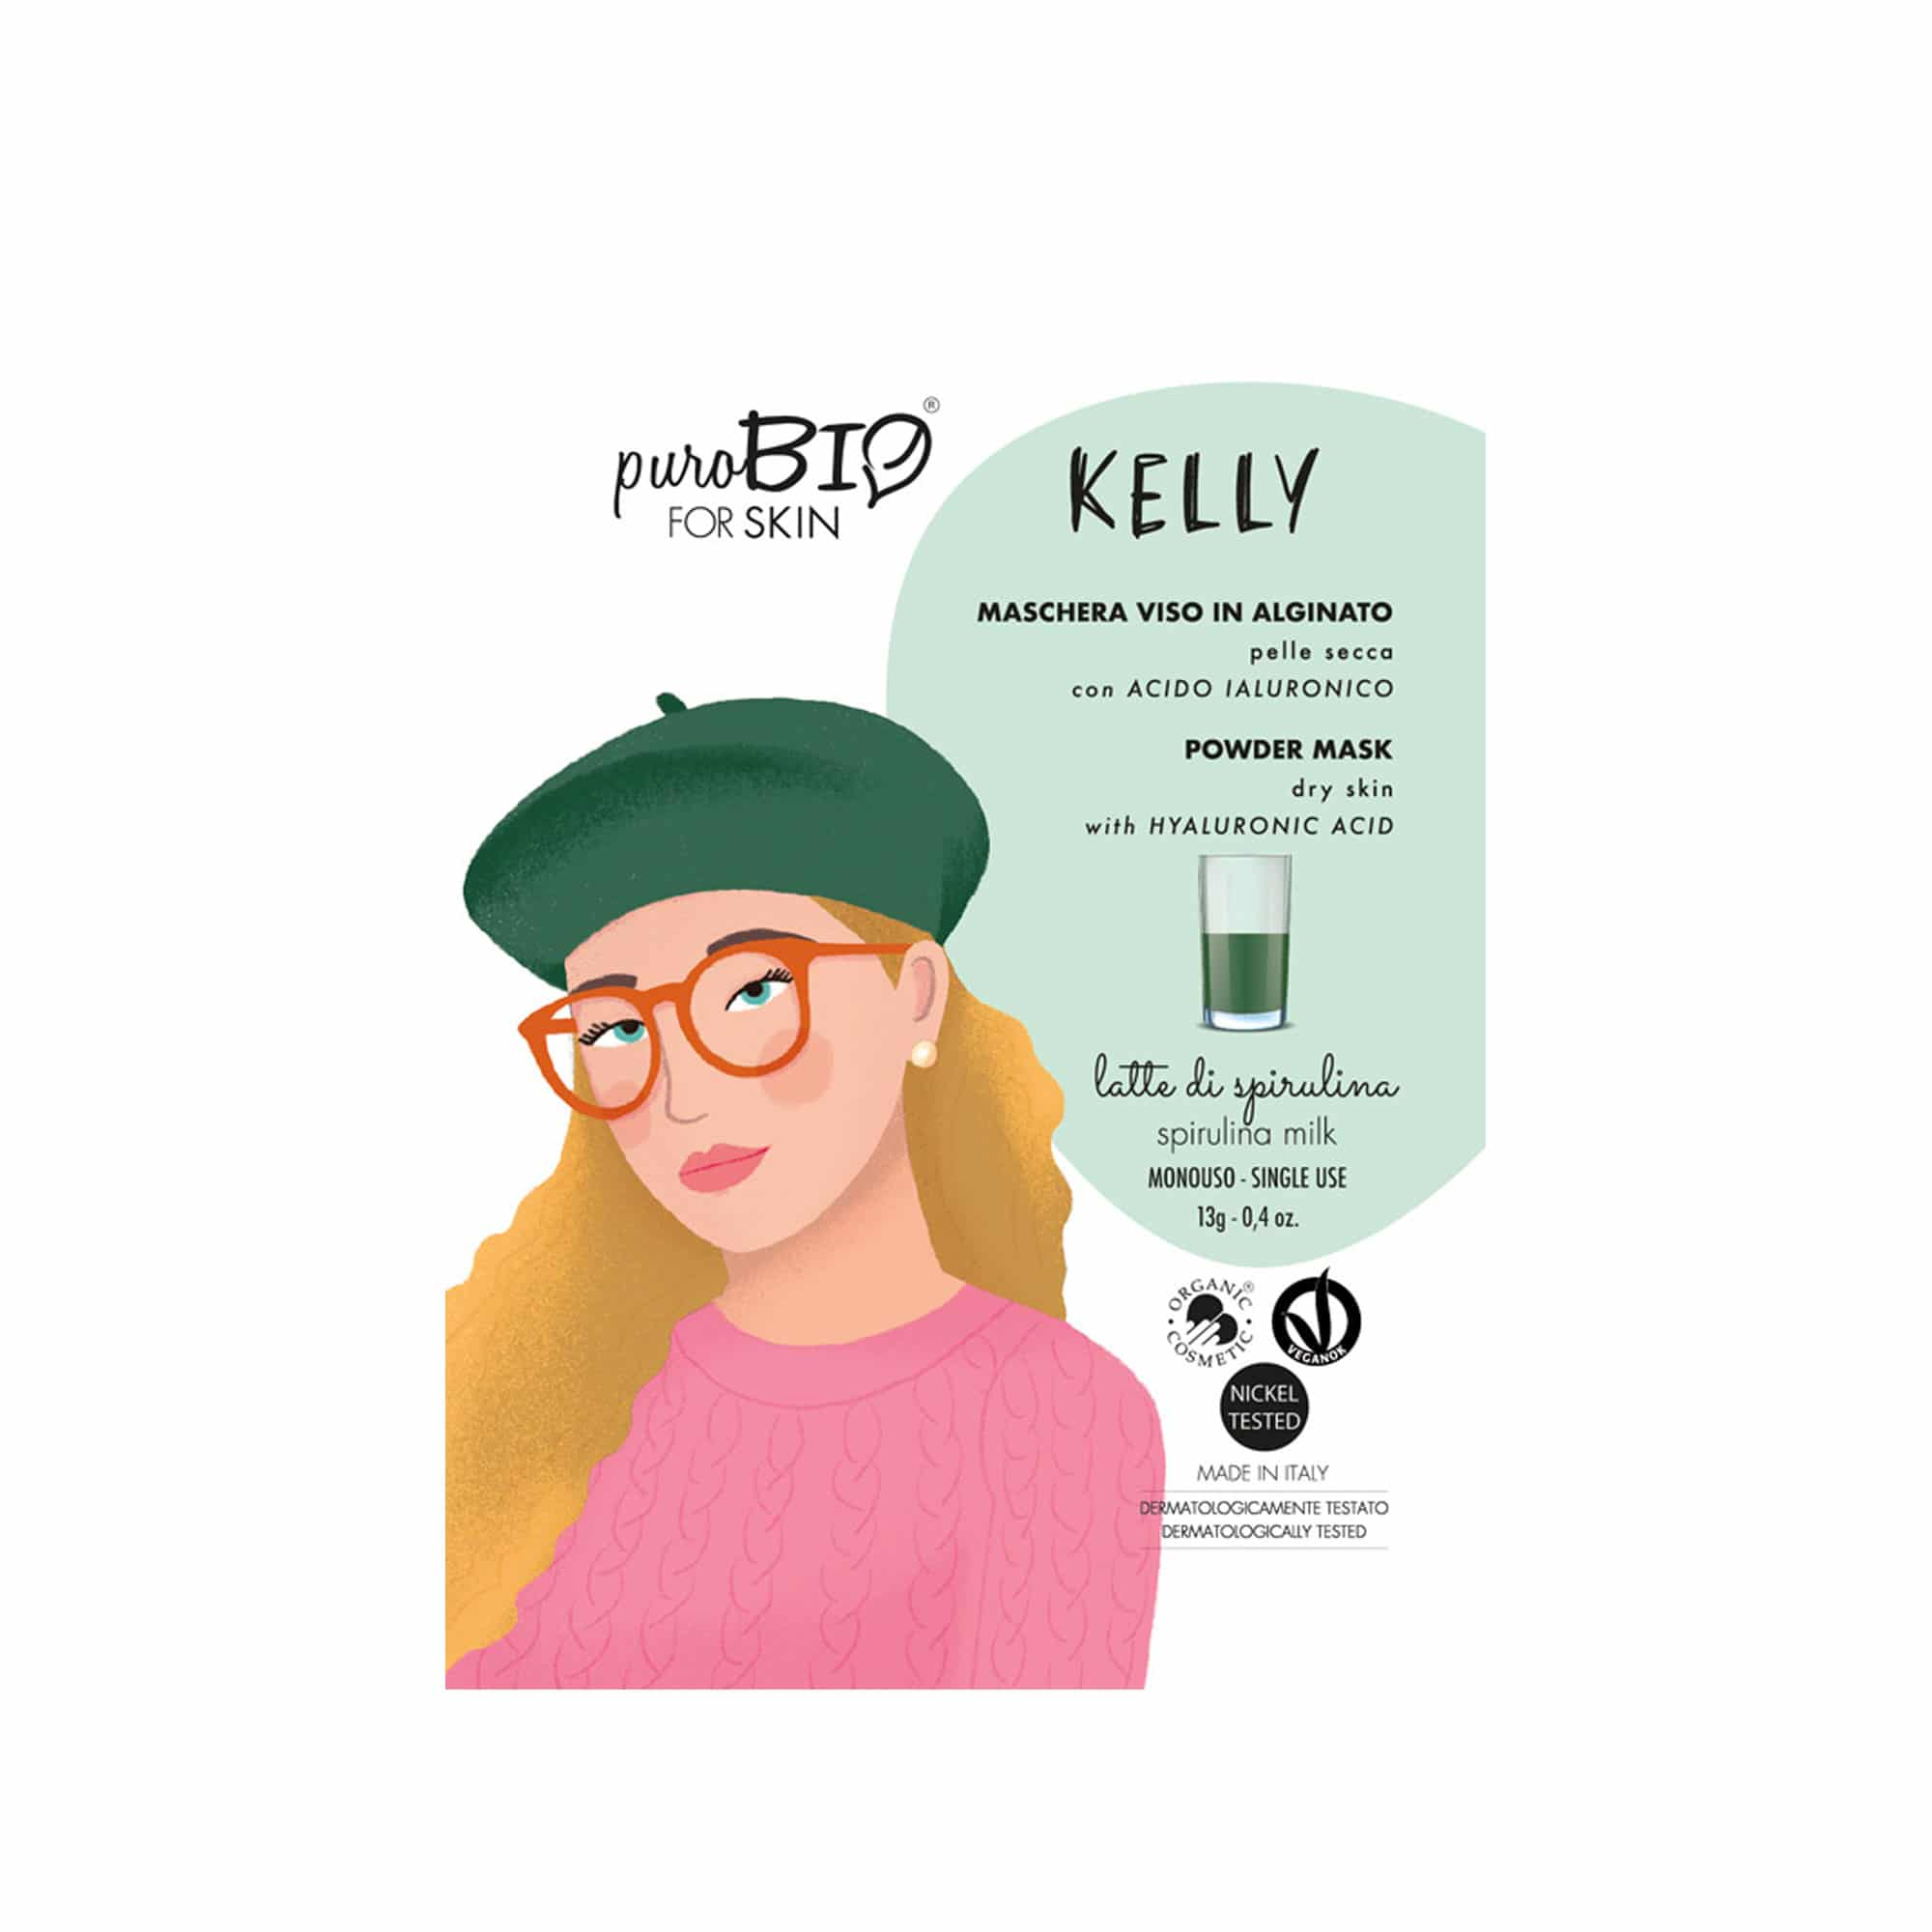 Masque Kelly Peel Off PuroBIO for skin